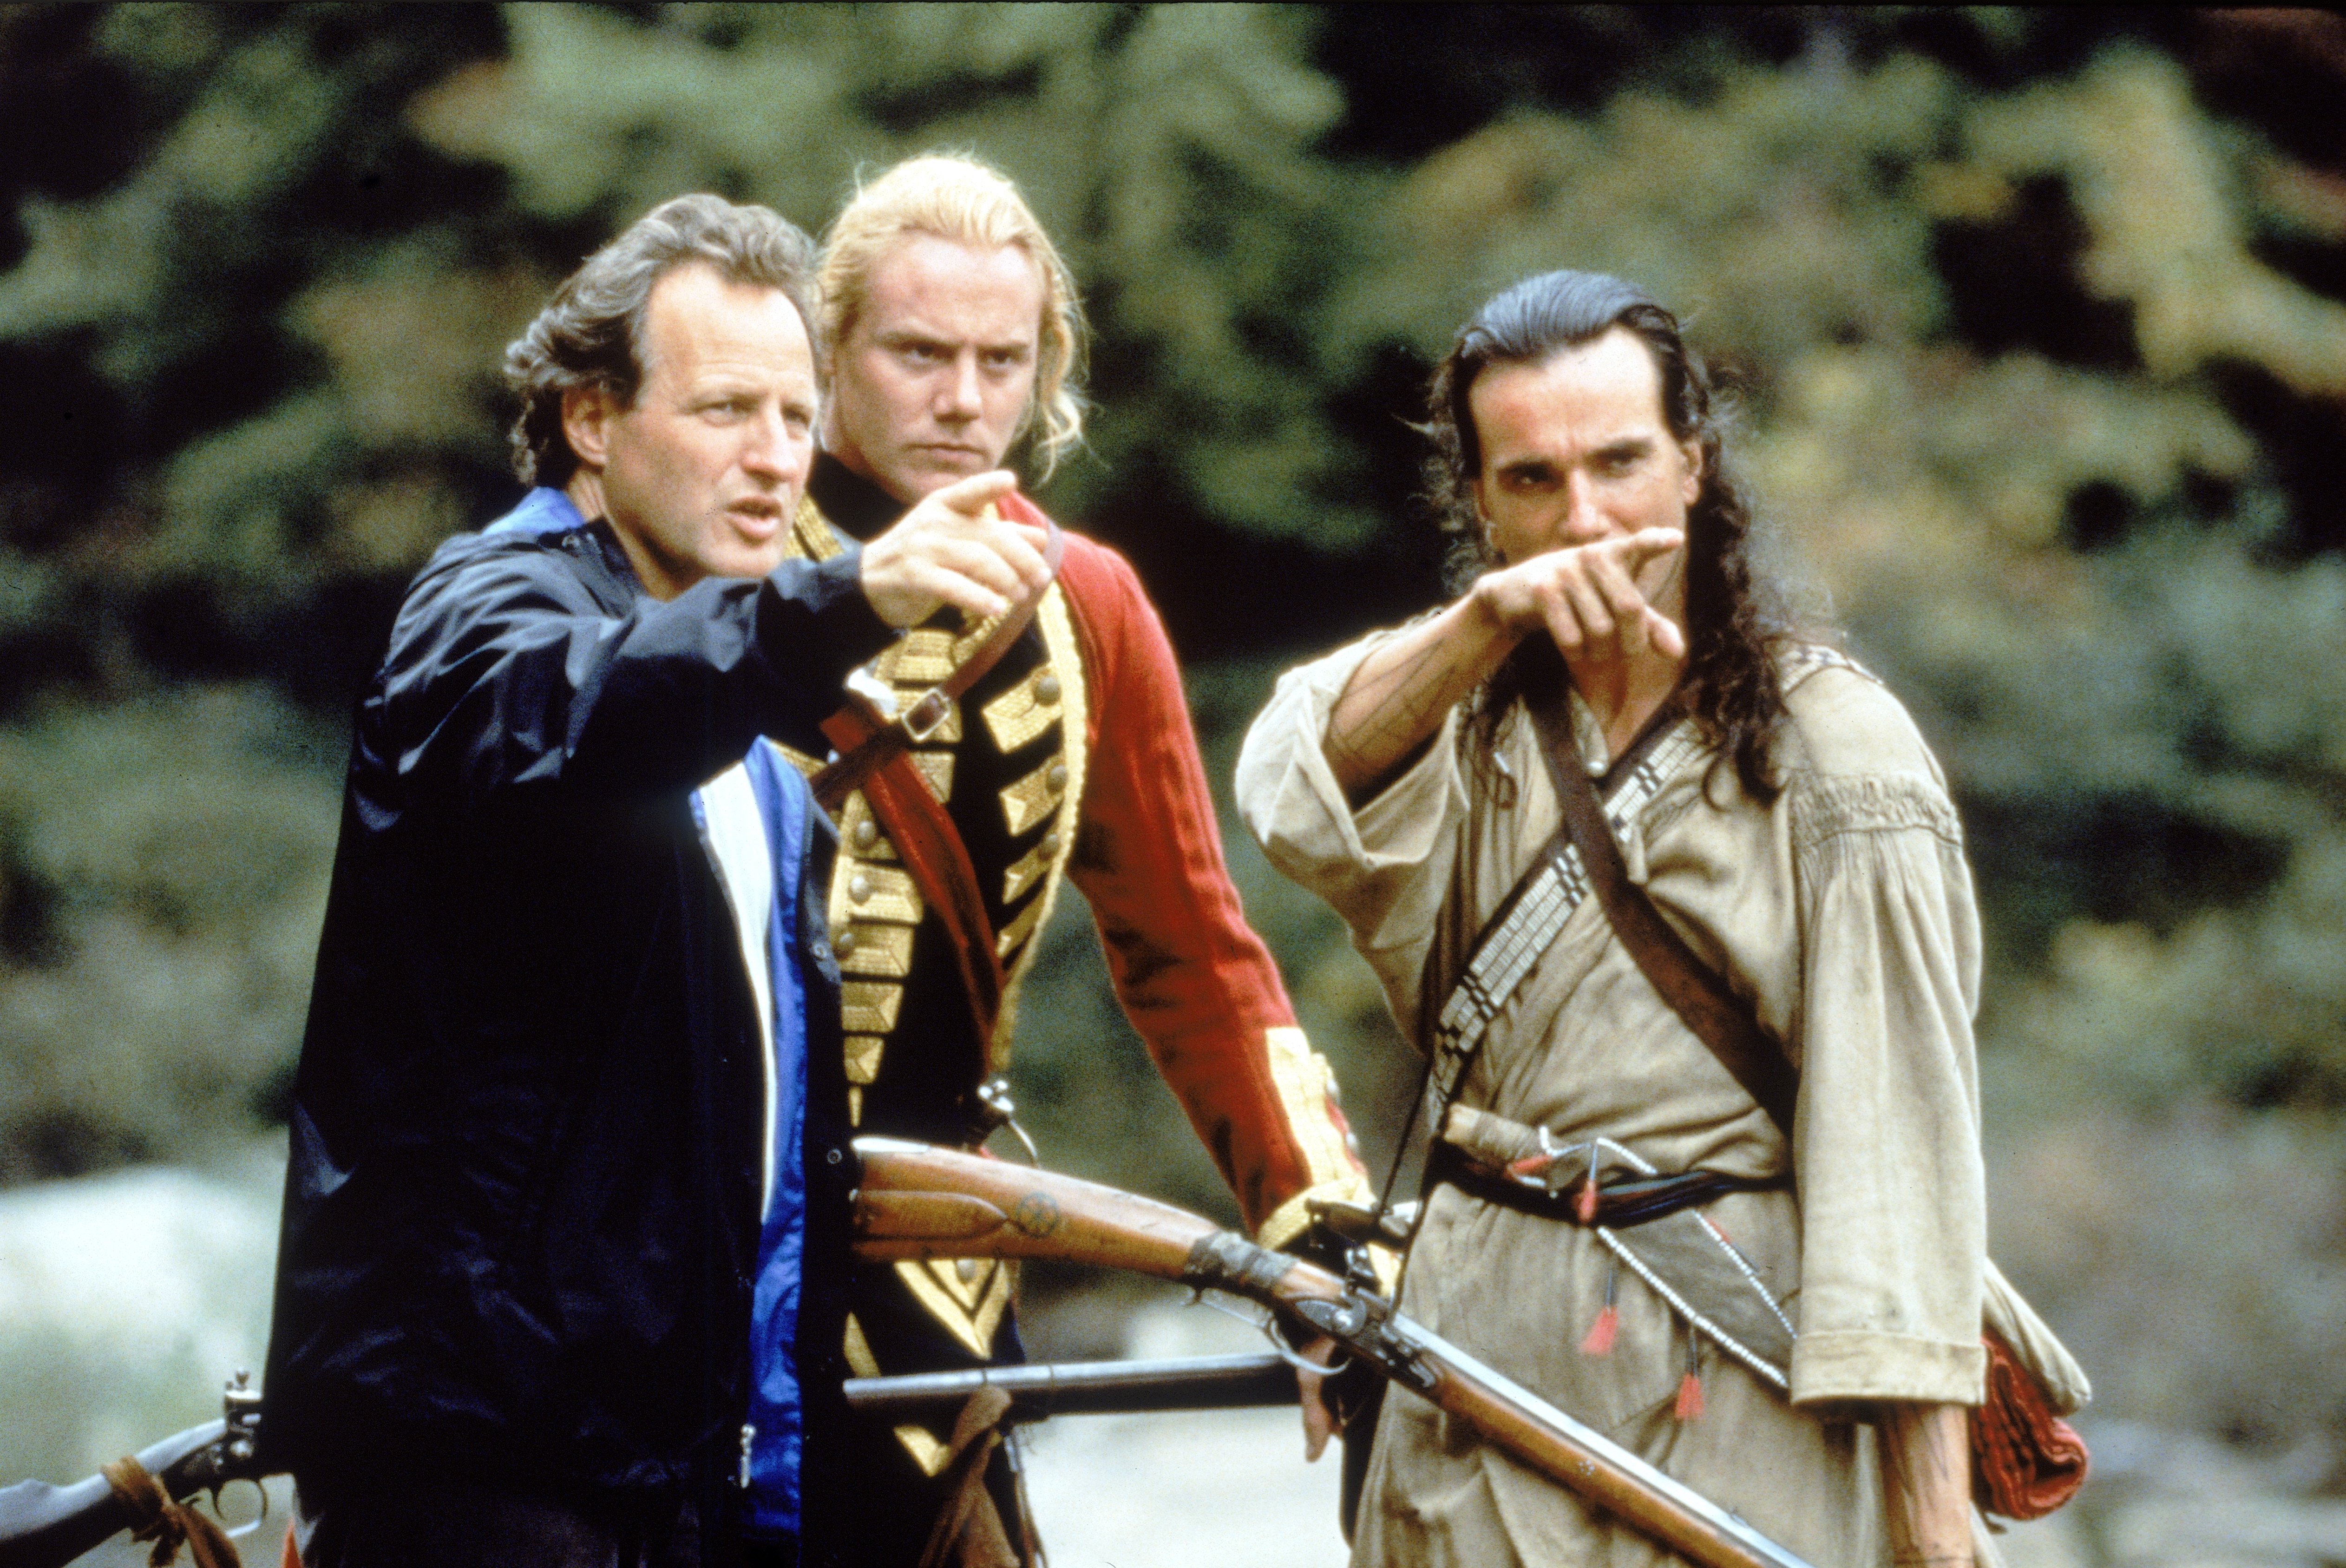 On The Set Of 'Last Of The Mohicans'